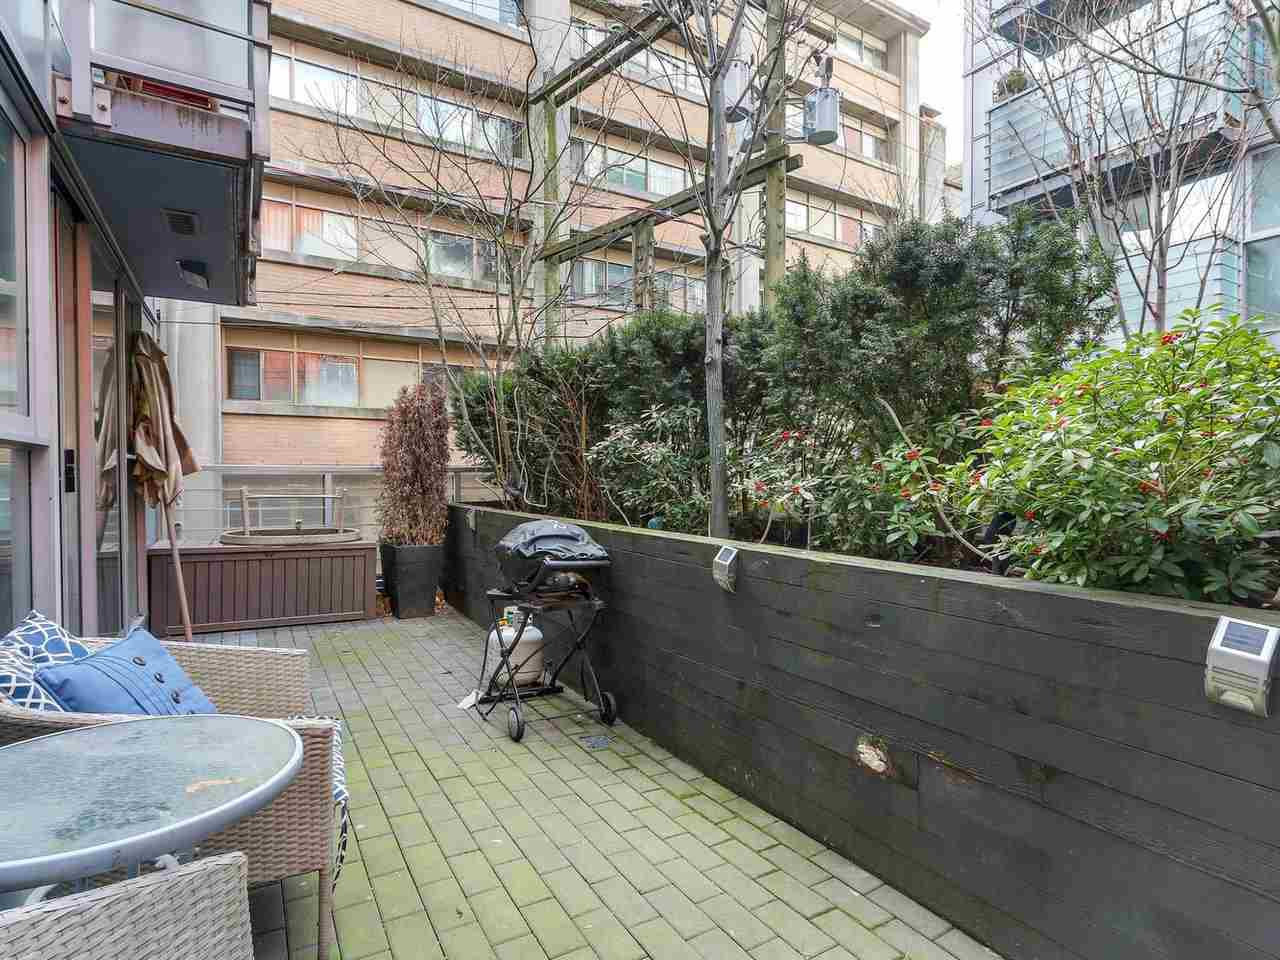 Photo 14: Photos: 217 168 POWELL Street in Vancouver: Downtown VE Condo for sale (Vancouver East)  : MLS®# R2386644